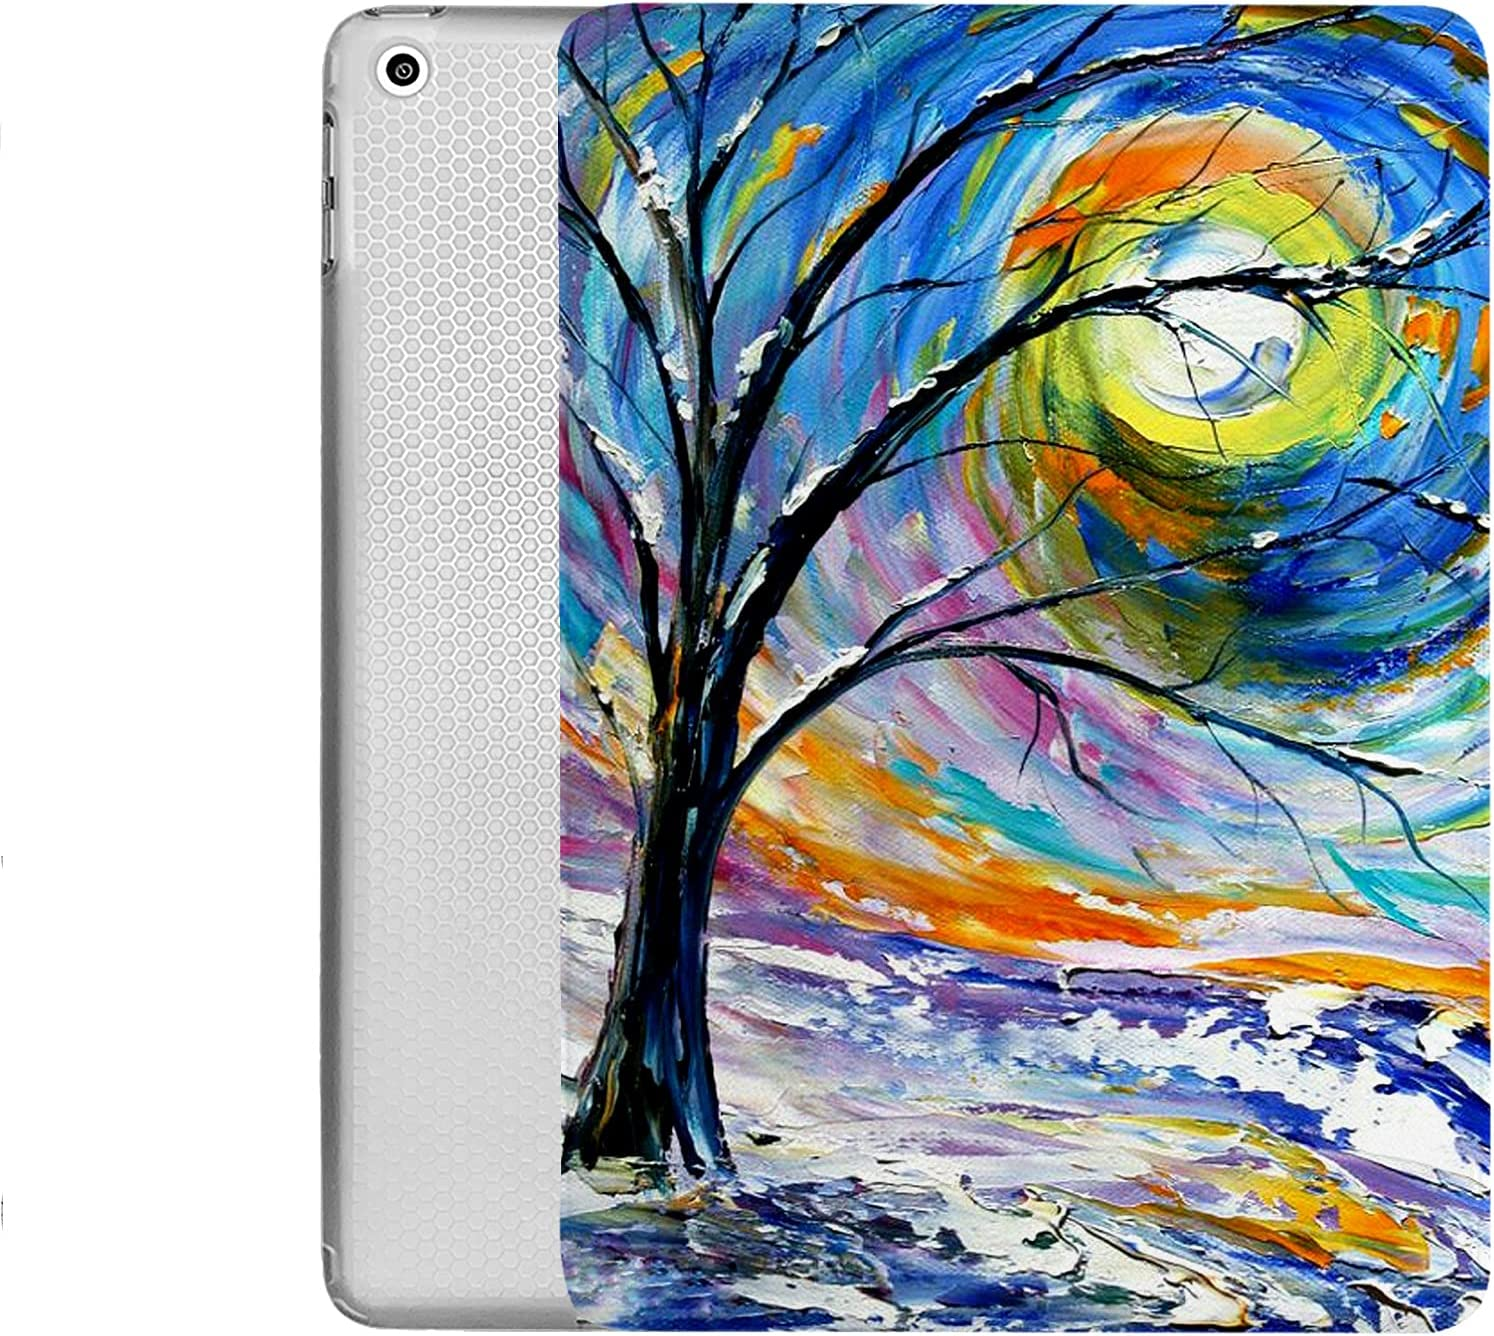 DuraSafe Cases For iPad 7.9 Case iPad Mini 3rd / 2nd / 1st GenSlim Smart Protective Cover Soft TPU Clear Back & Viewing/Typing Stand for iPad 7.9